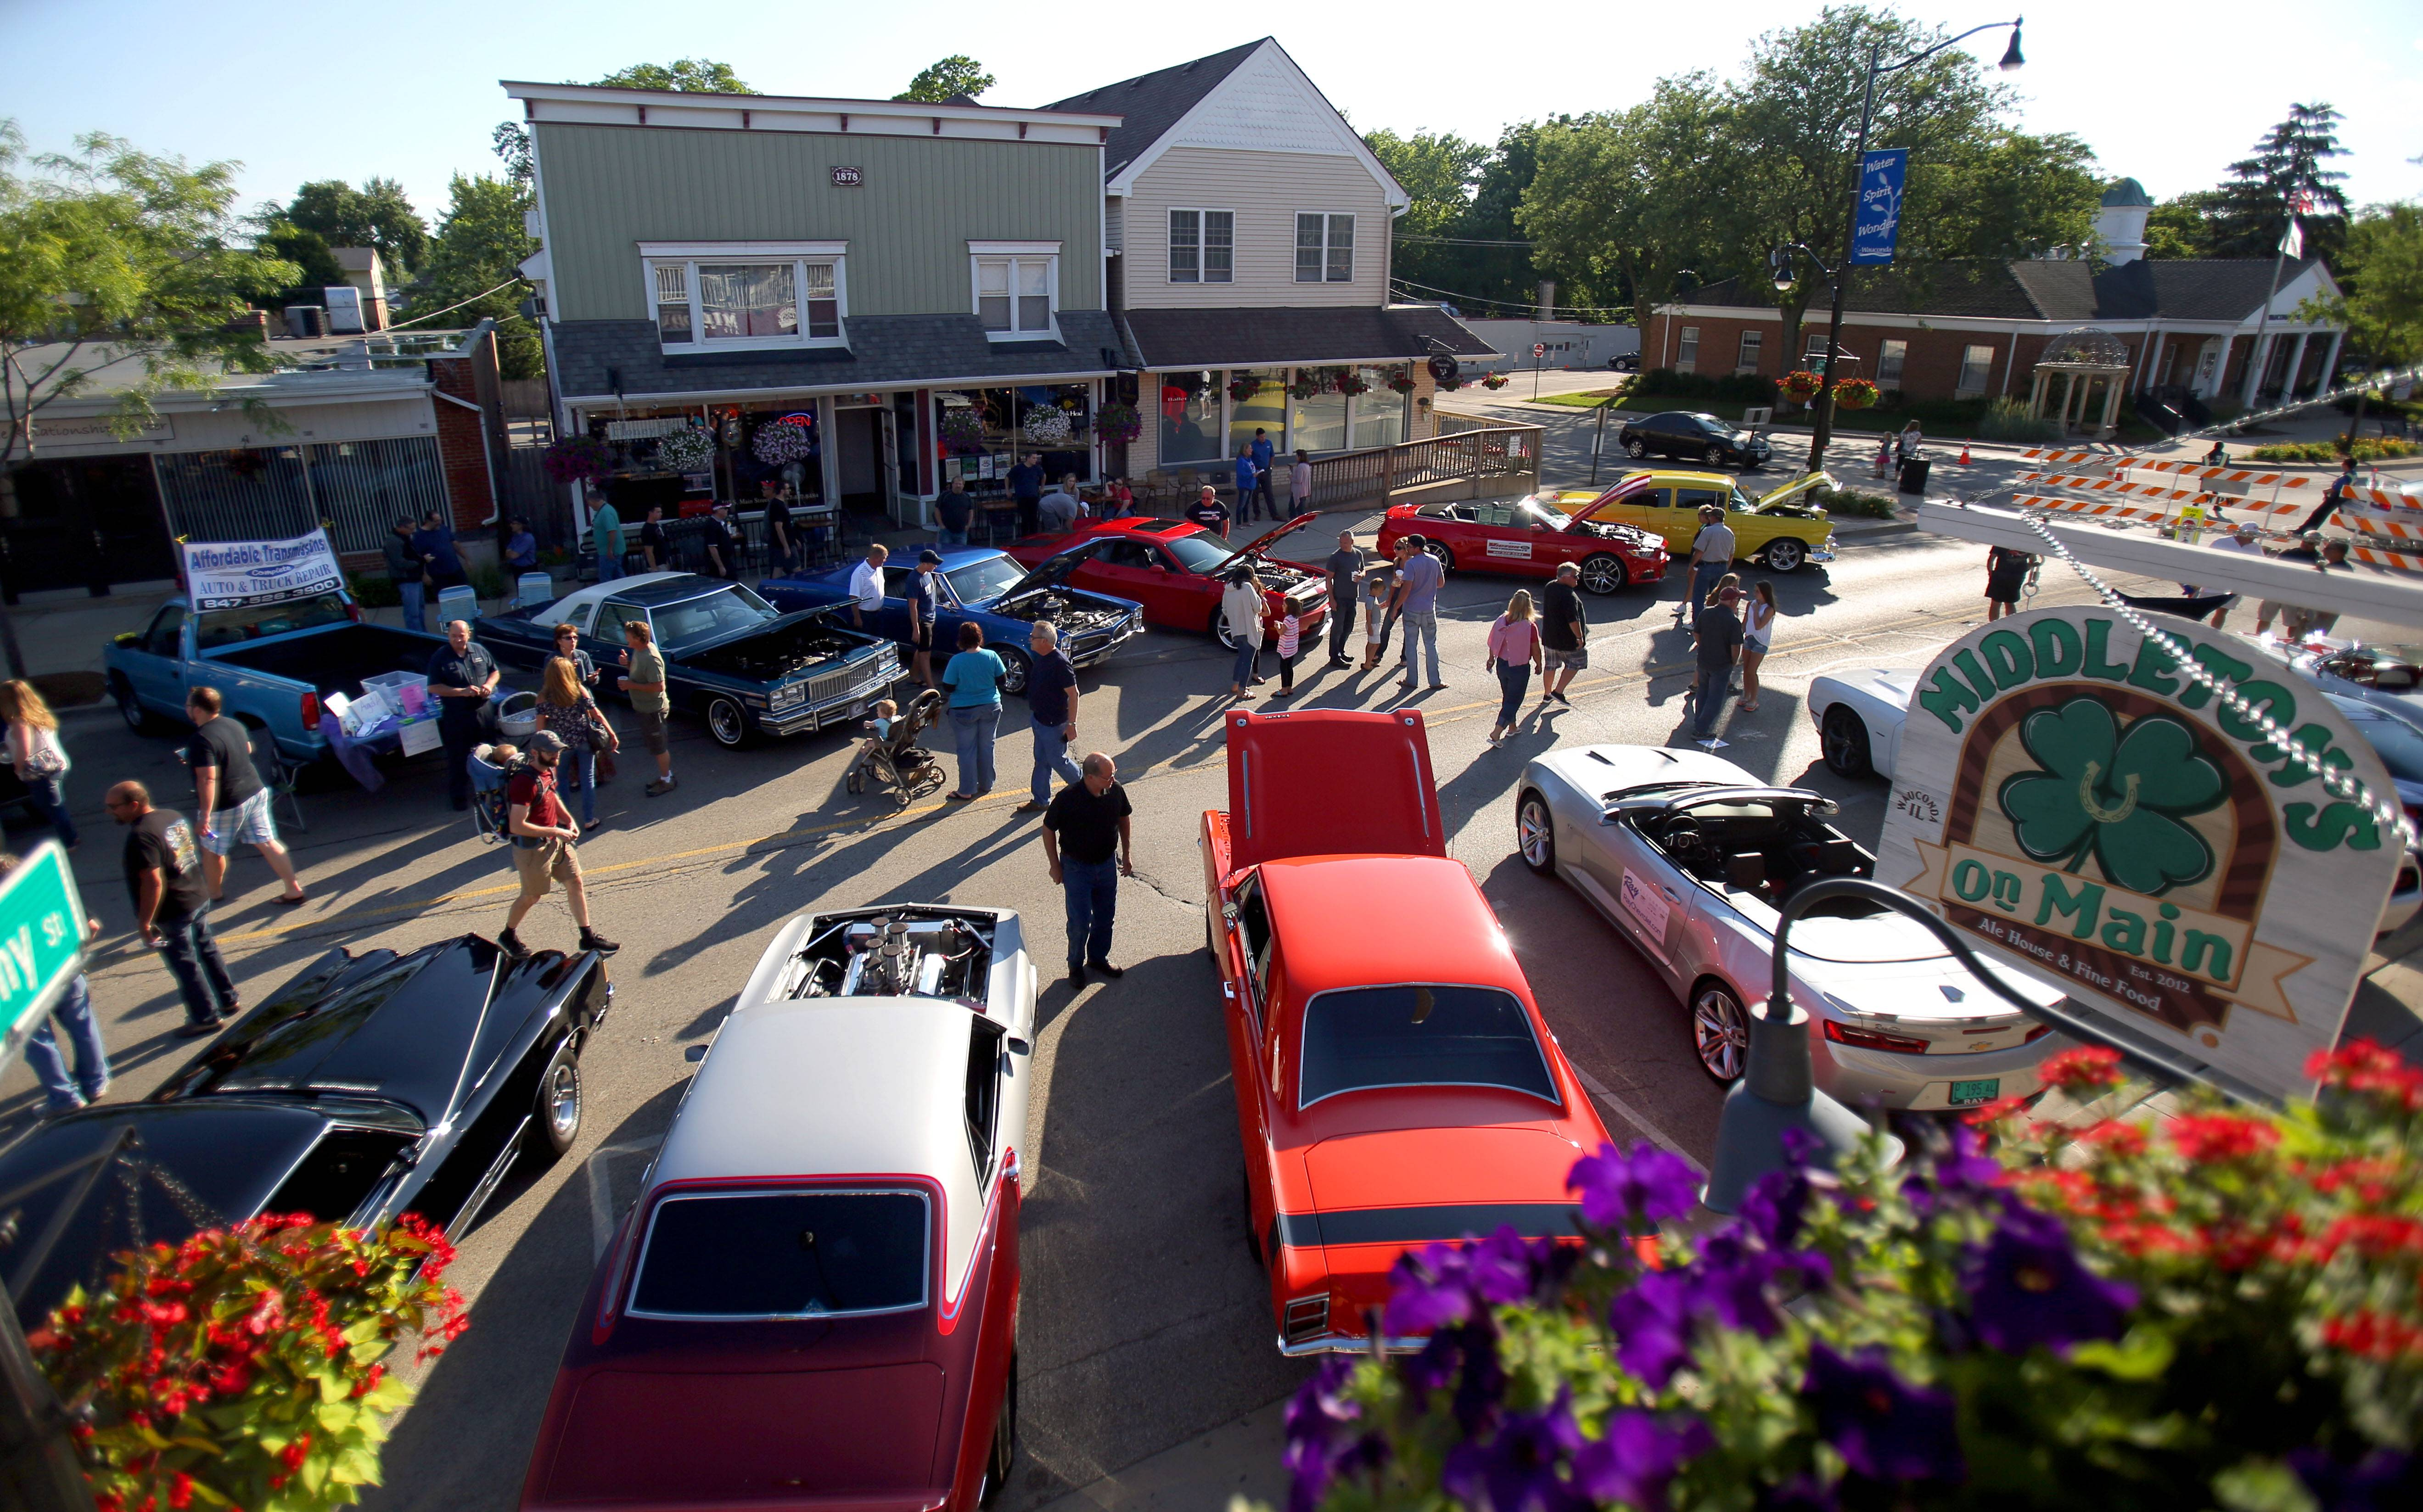 People gathered on Main Street the fourth annual Wauconda Cruise Night in downtown Wauconda Tuesday evening.